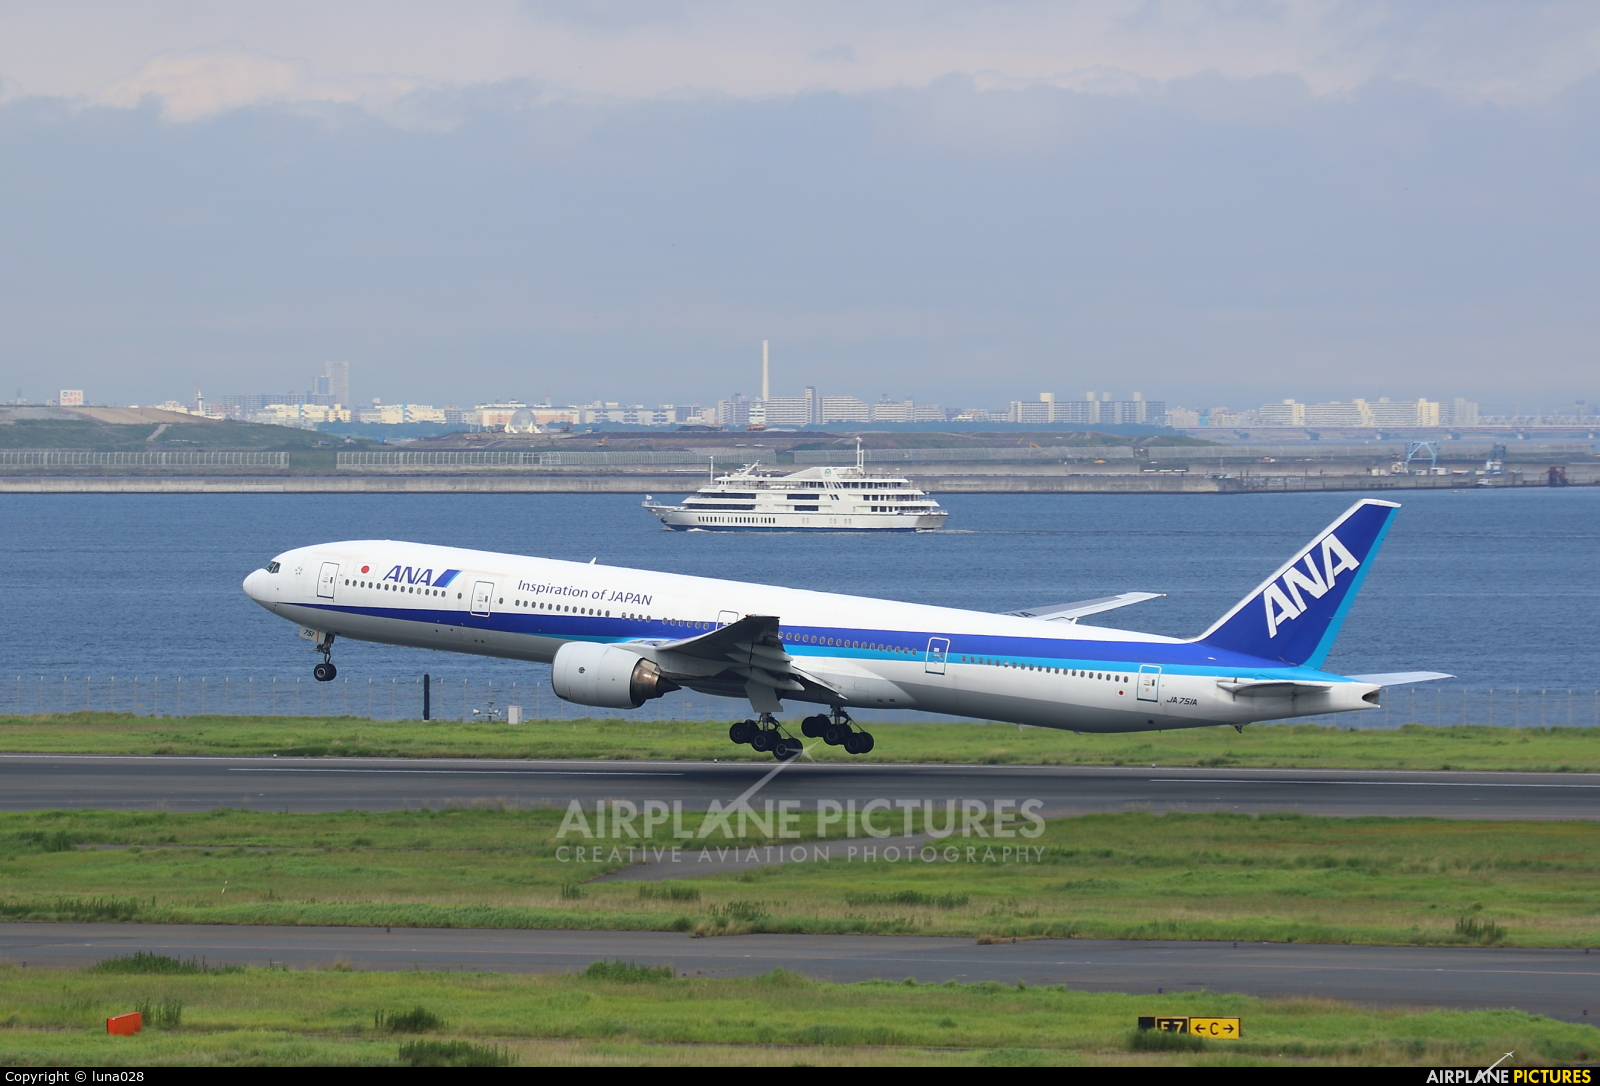 ANA - All Nippon Airways JA751A aircraft at Tokyo - Haneda Intl